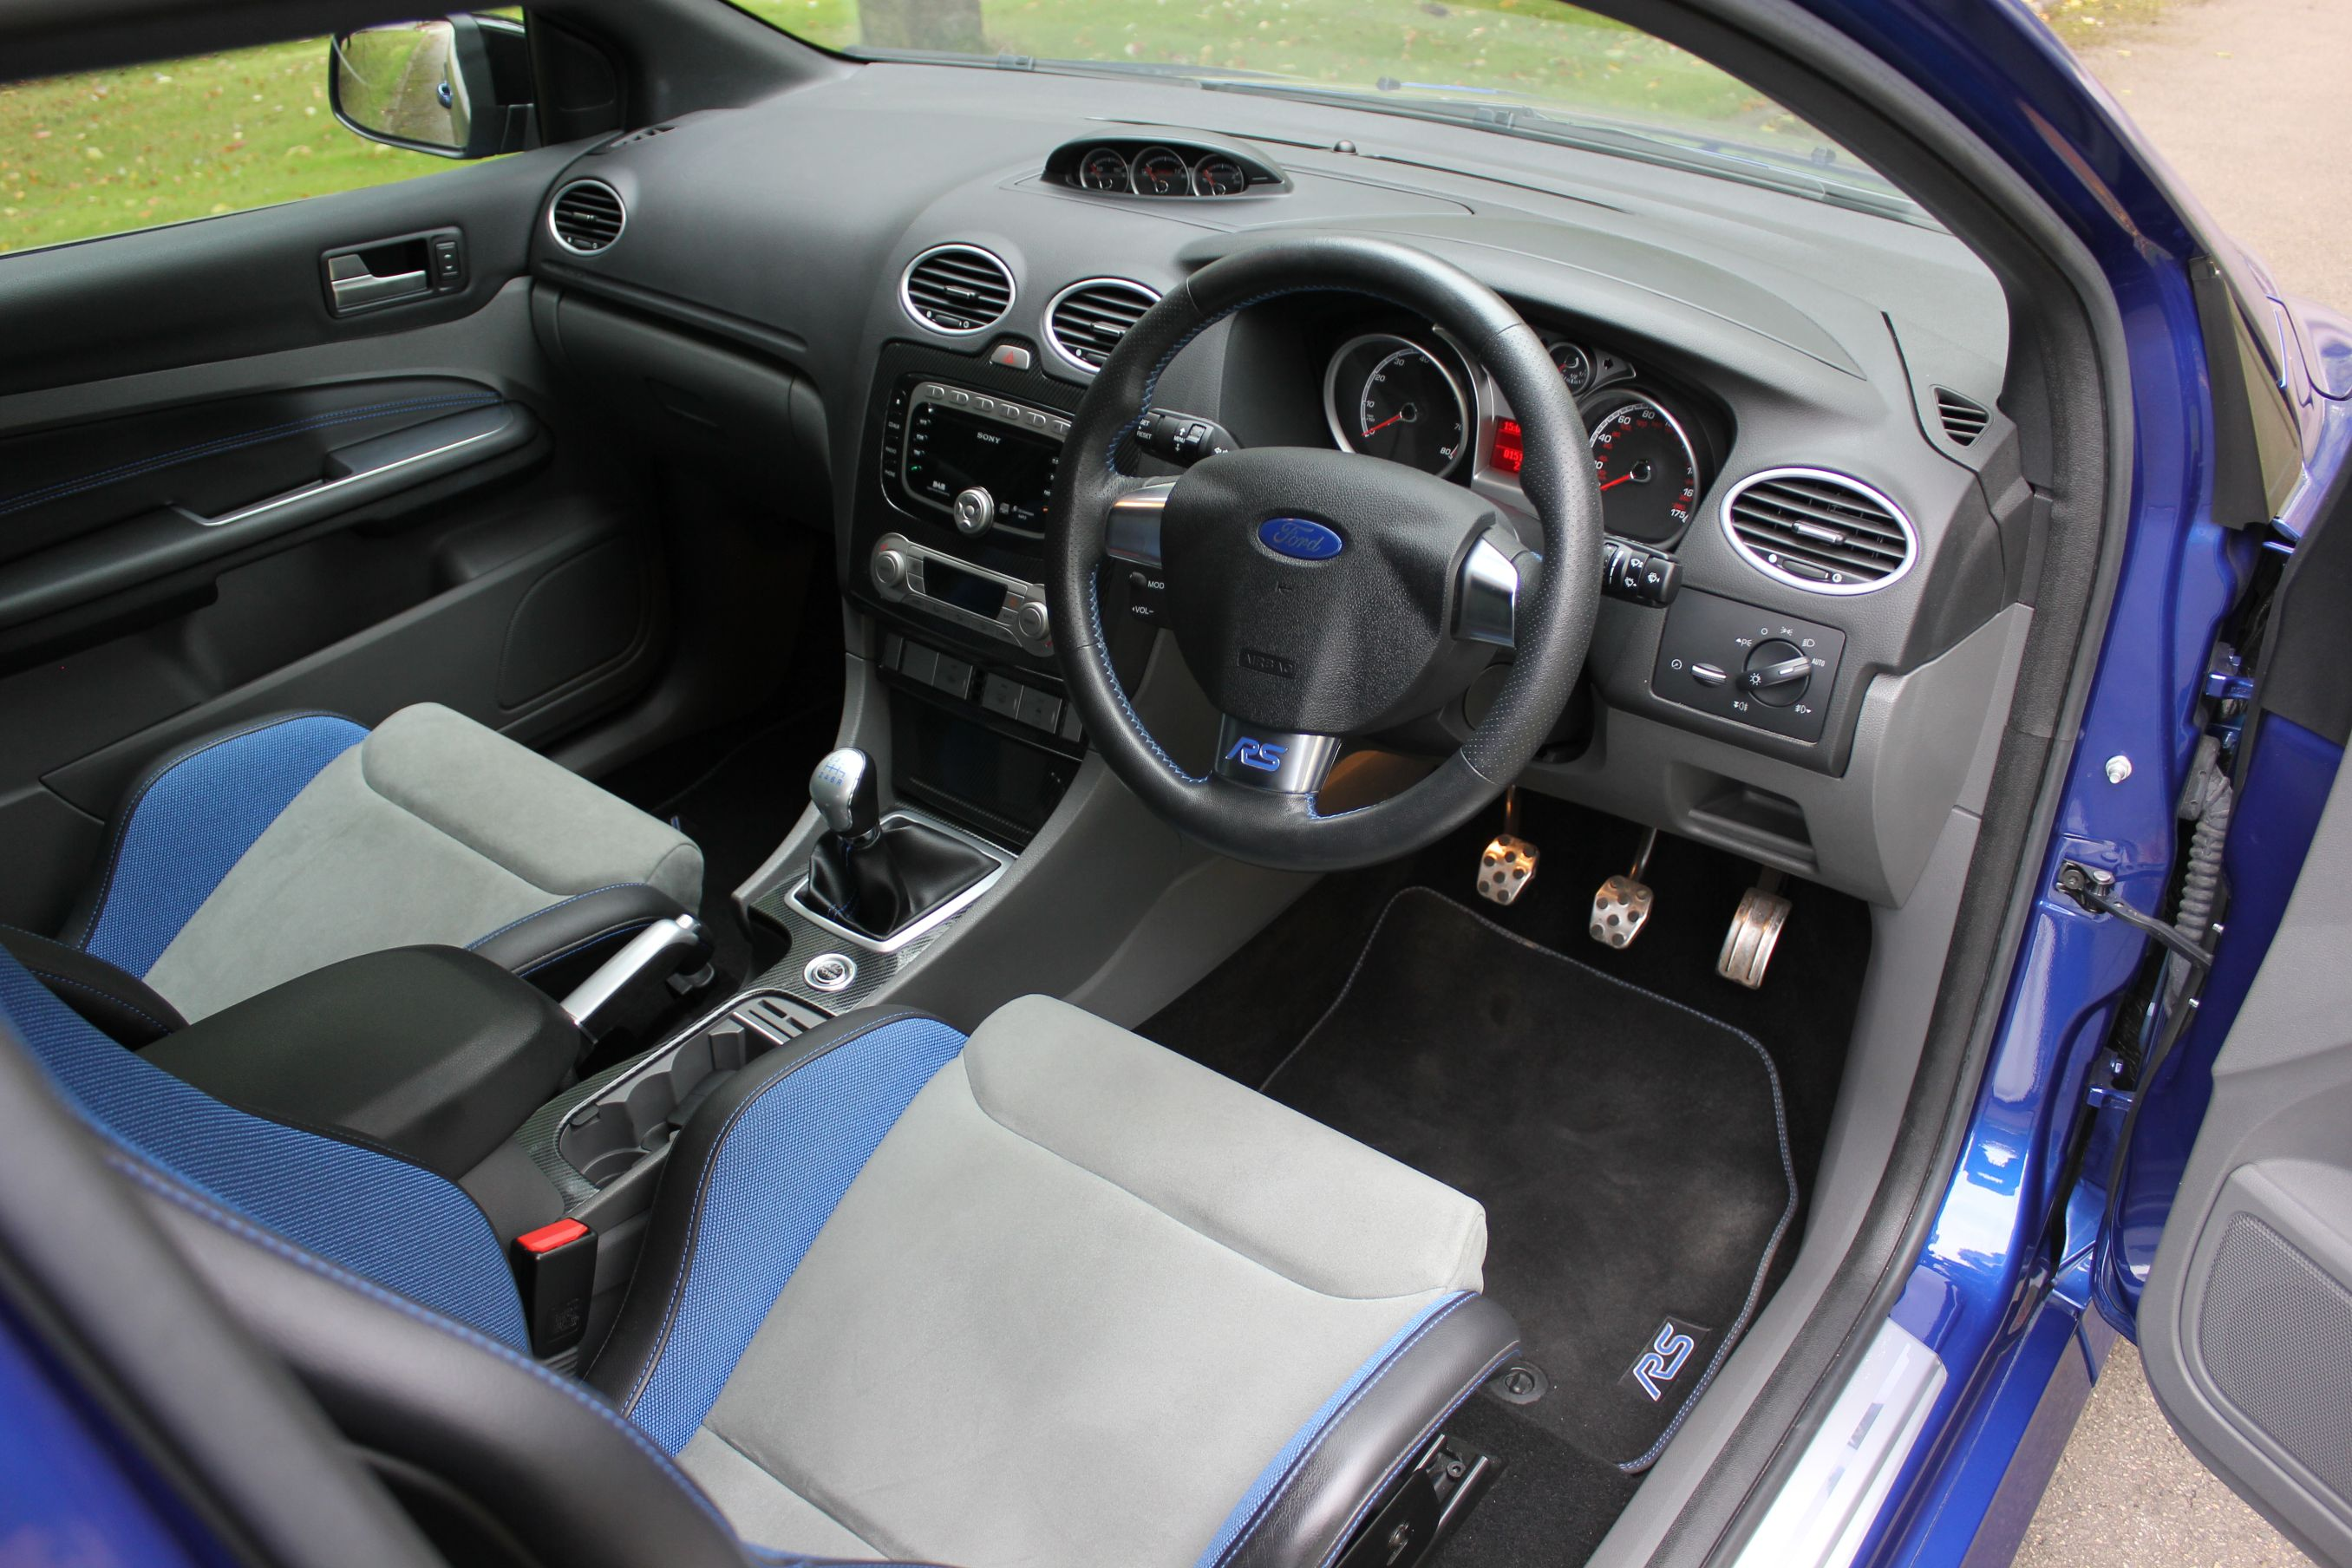 Ford Focus Rs Mk2 Stunning 1 Owner Car With 15 000 Miles Ffsh Shmoo Automotive Shmoo Automotive